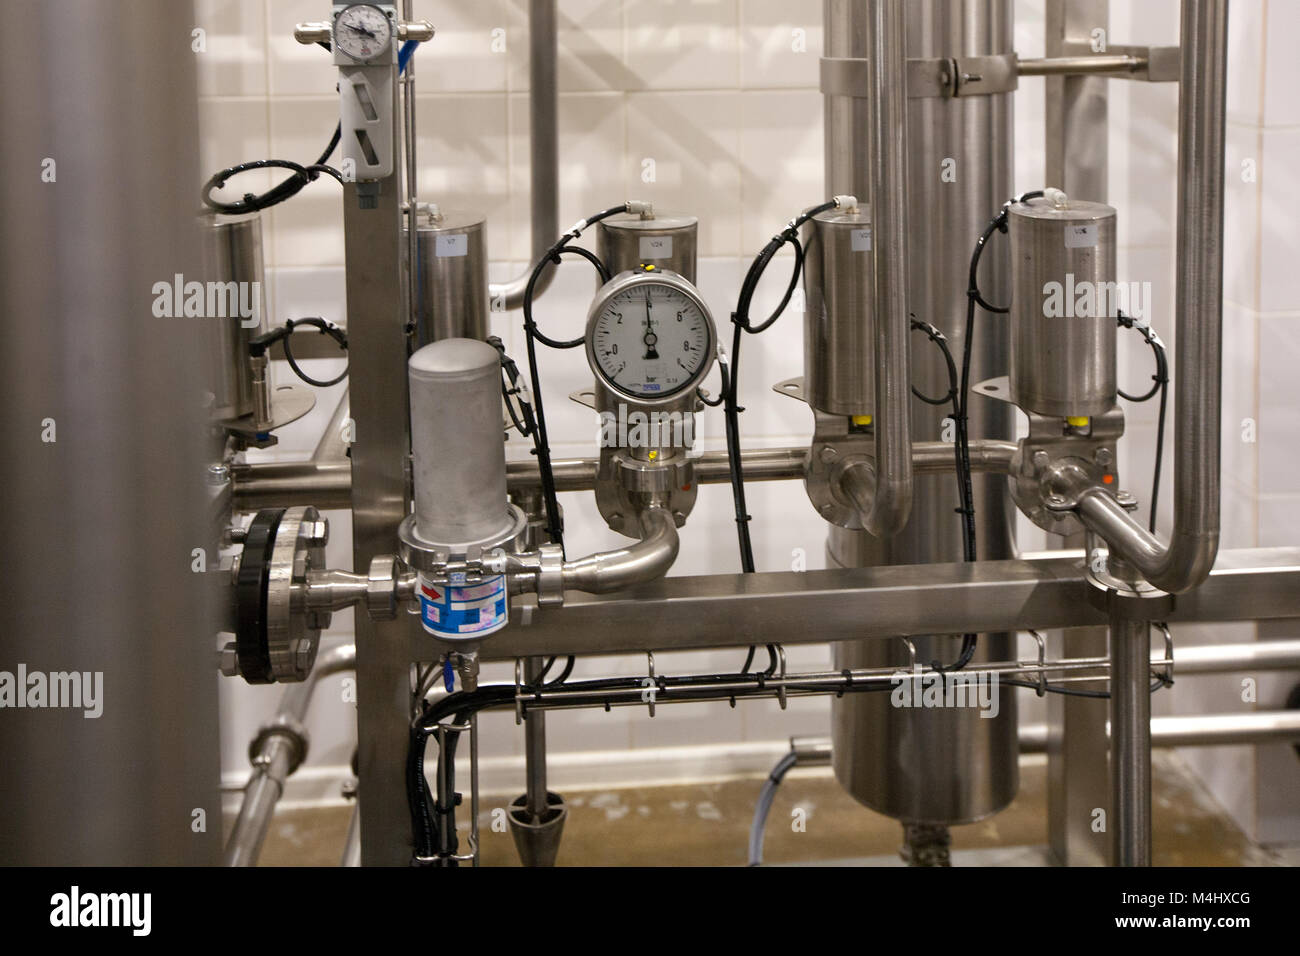 Pressure gauge (manometer) of white metal -  brewing equipment. Close-up, macro. - Stock Image